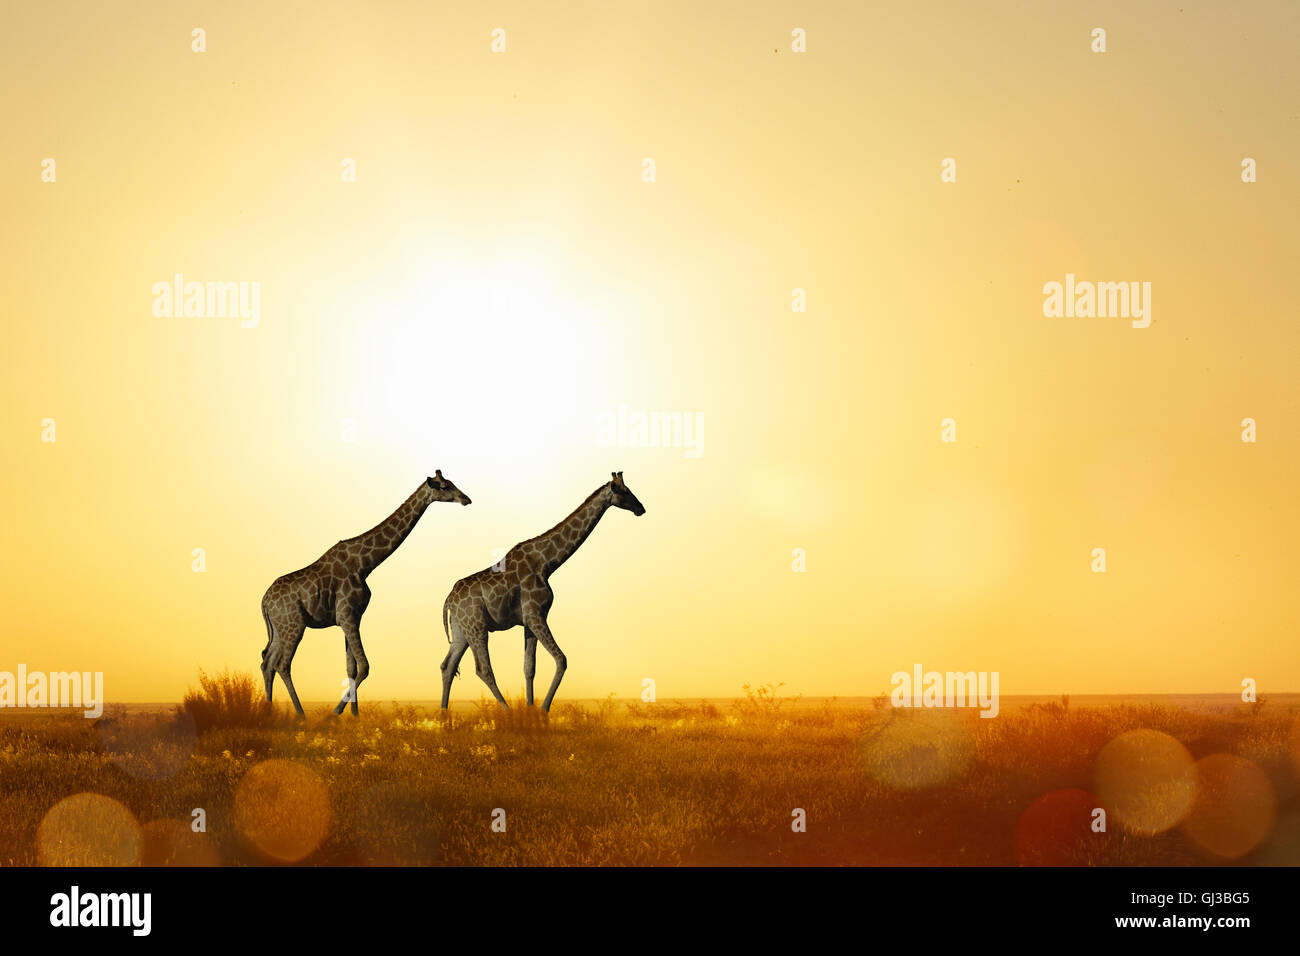 Giraffes at sunset, Etosha National Park, Namibia - Stock Image